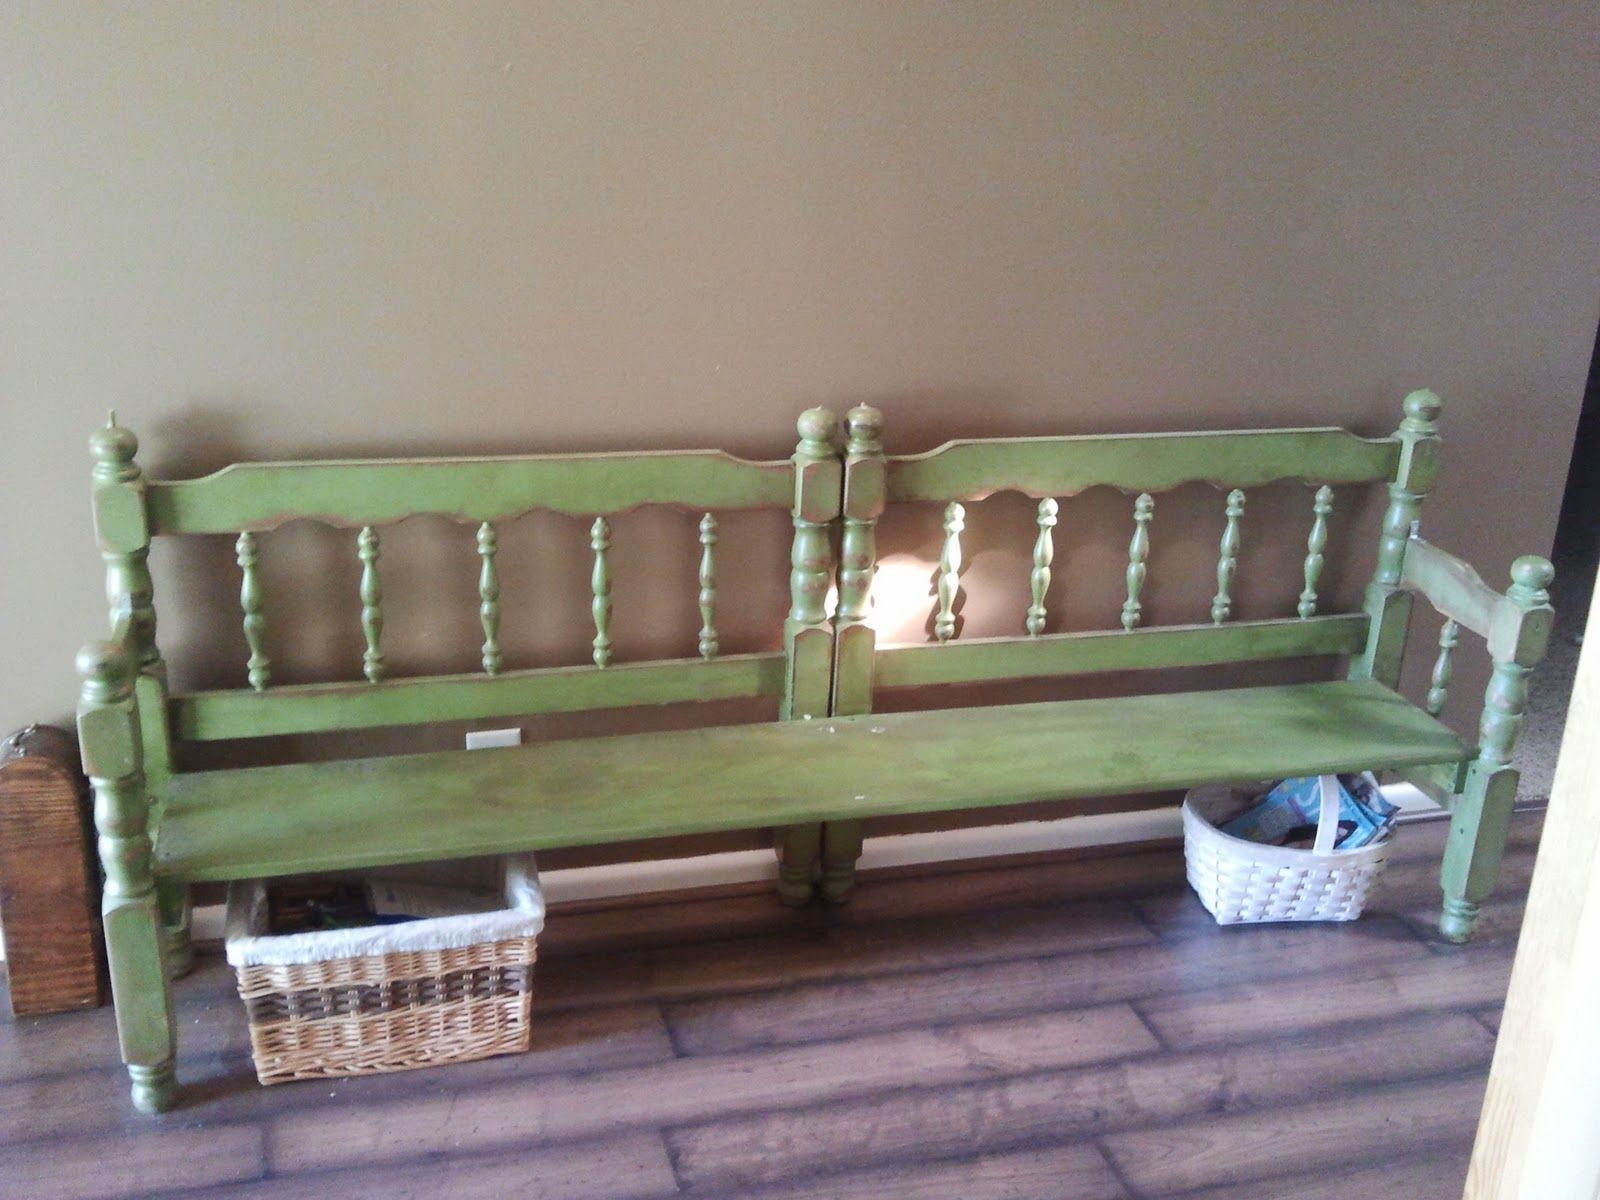 Bench Made From Bunk Beds Diy Ideas Pinterest Bunk Bed